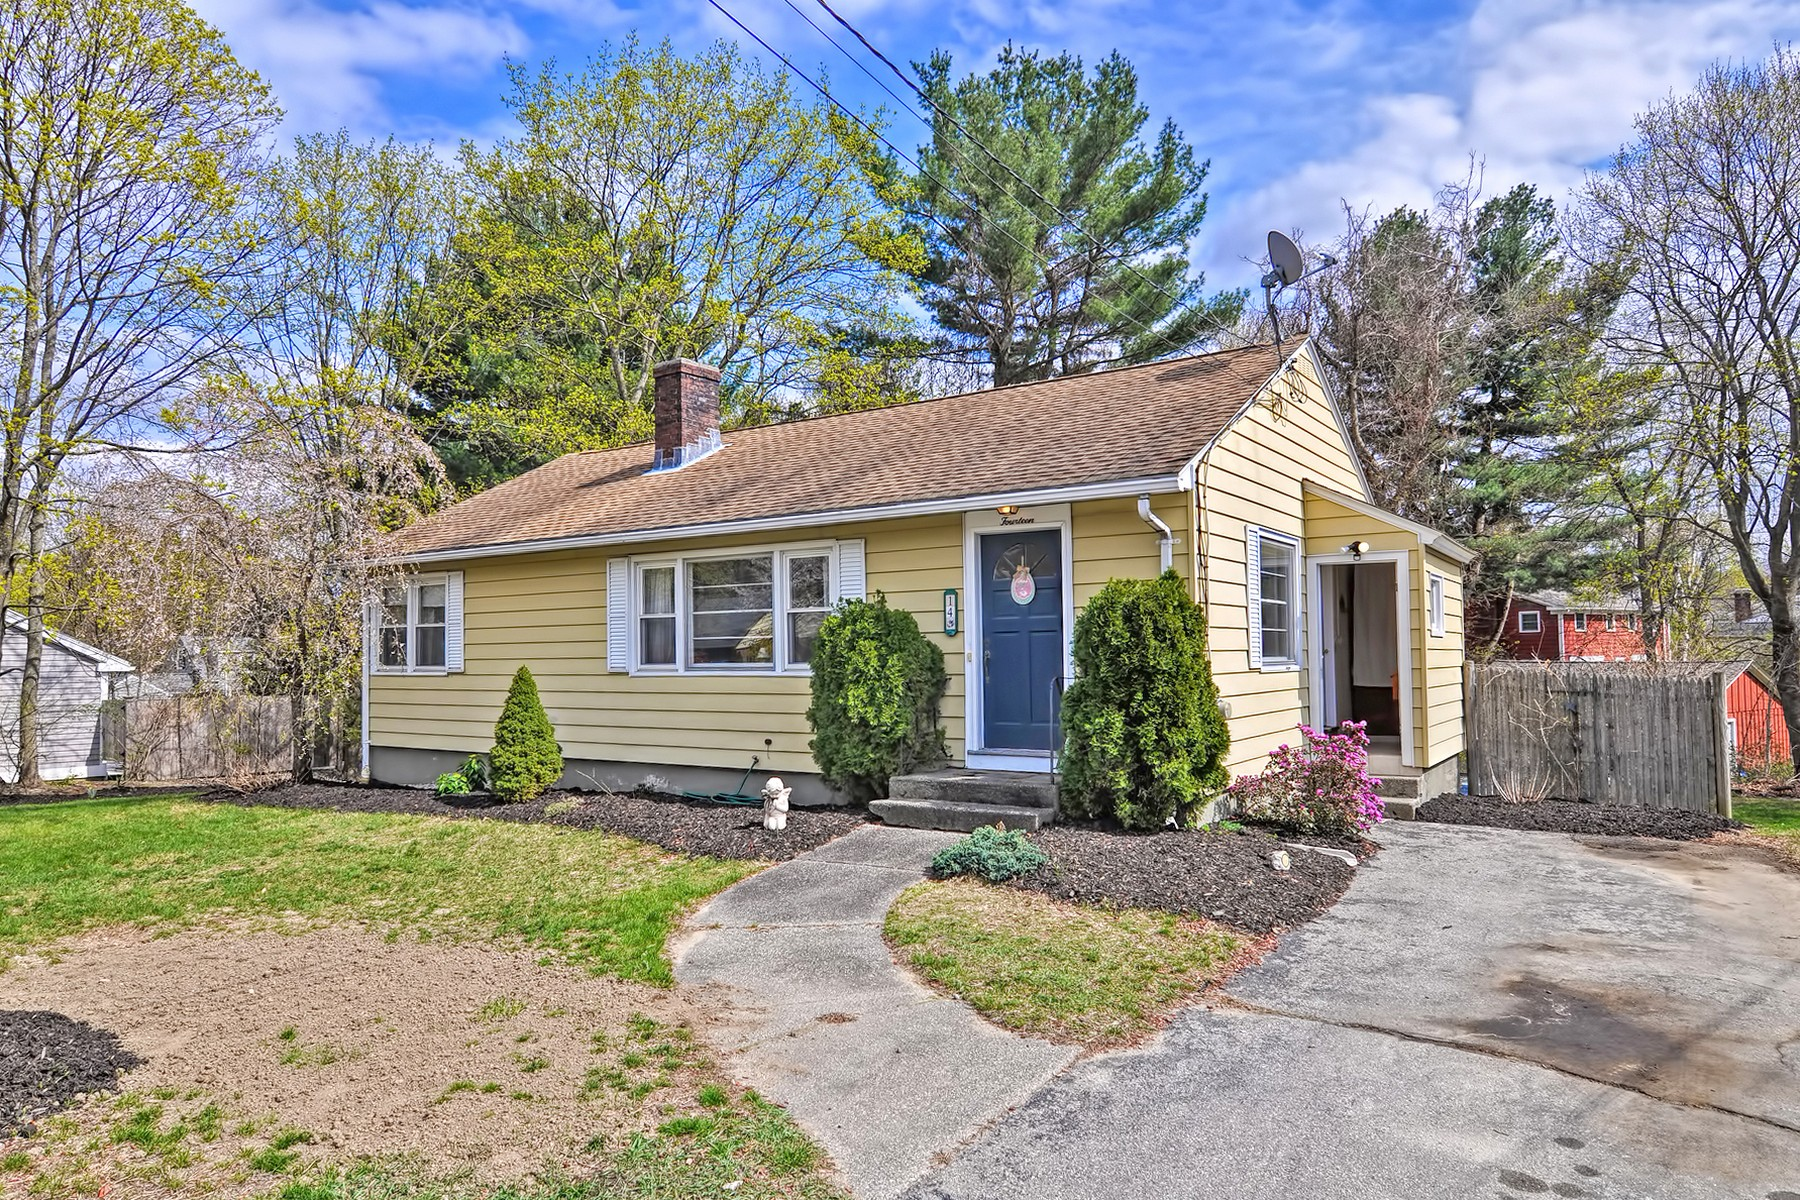 Single Family Home for Sale at Ranch Home - Great Location 14 West End Avenue Westborough, Massachusetts, 01581 United States